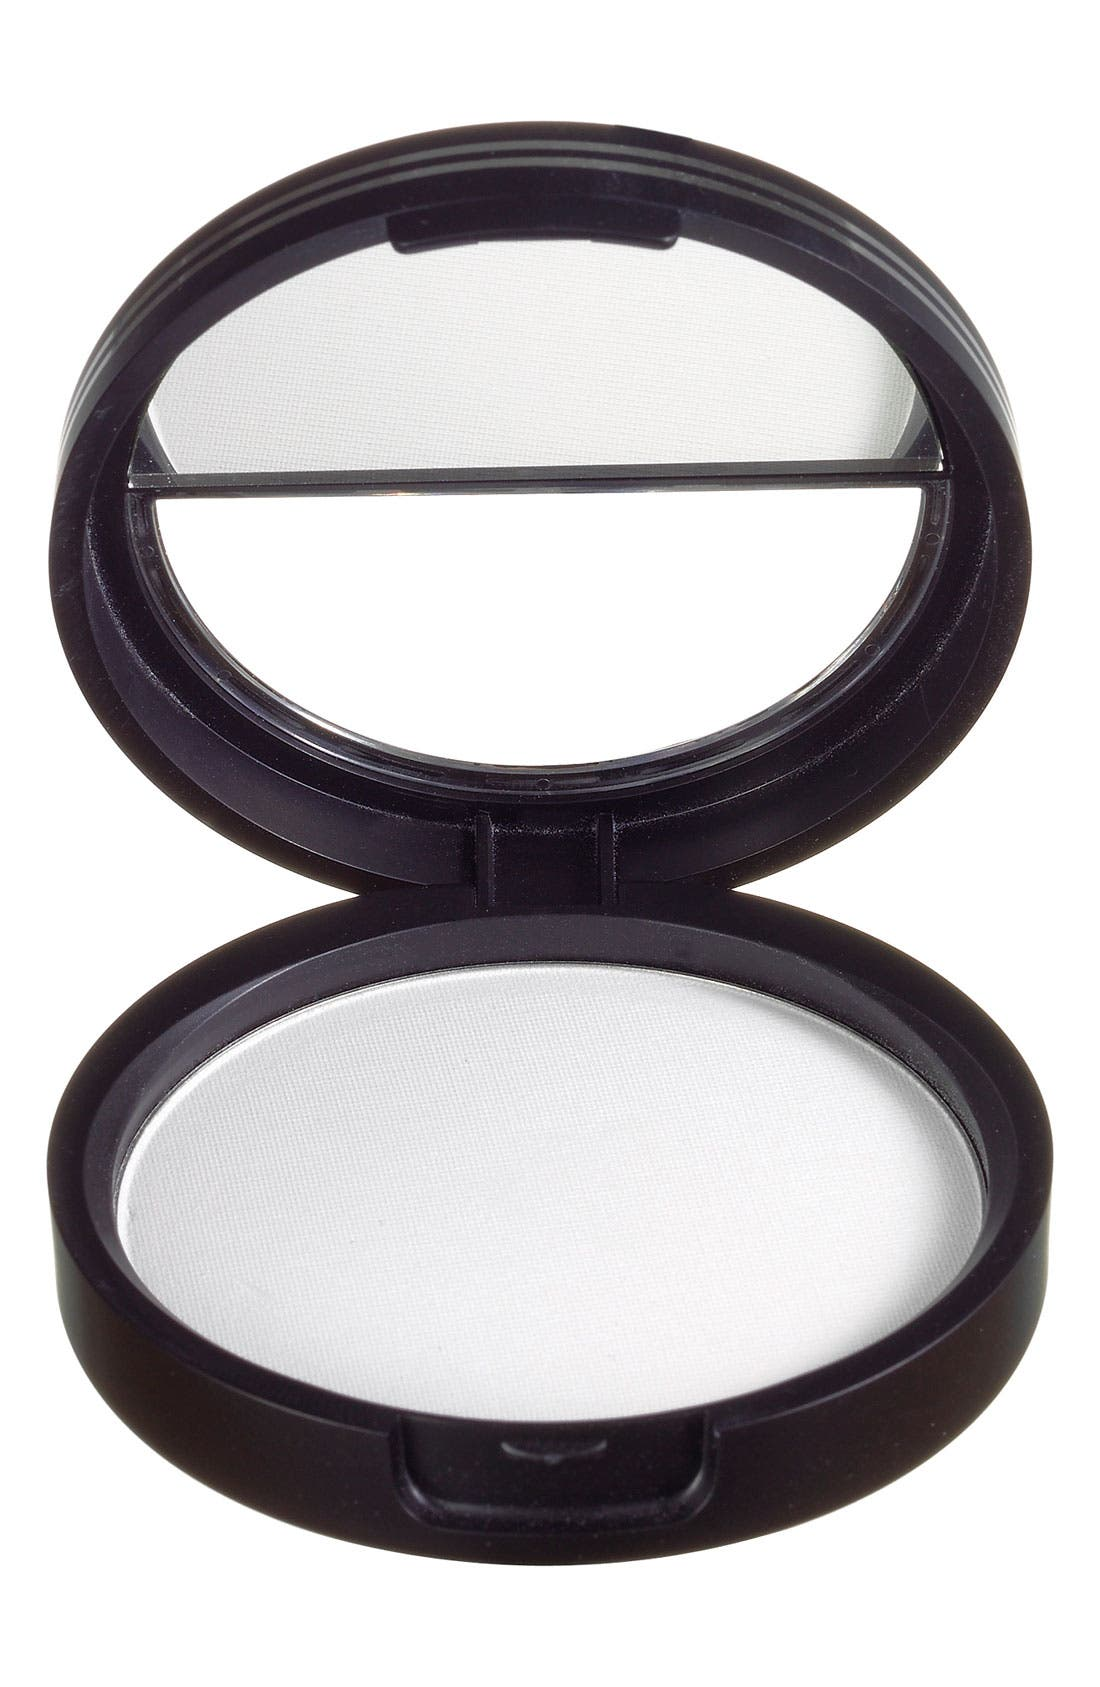 Laura Geller Beauty 'Matte Maker' Invisible Oil Blotting Powder